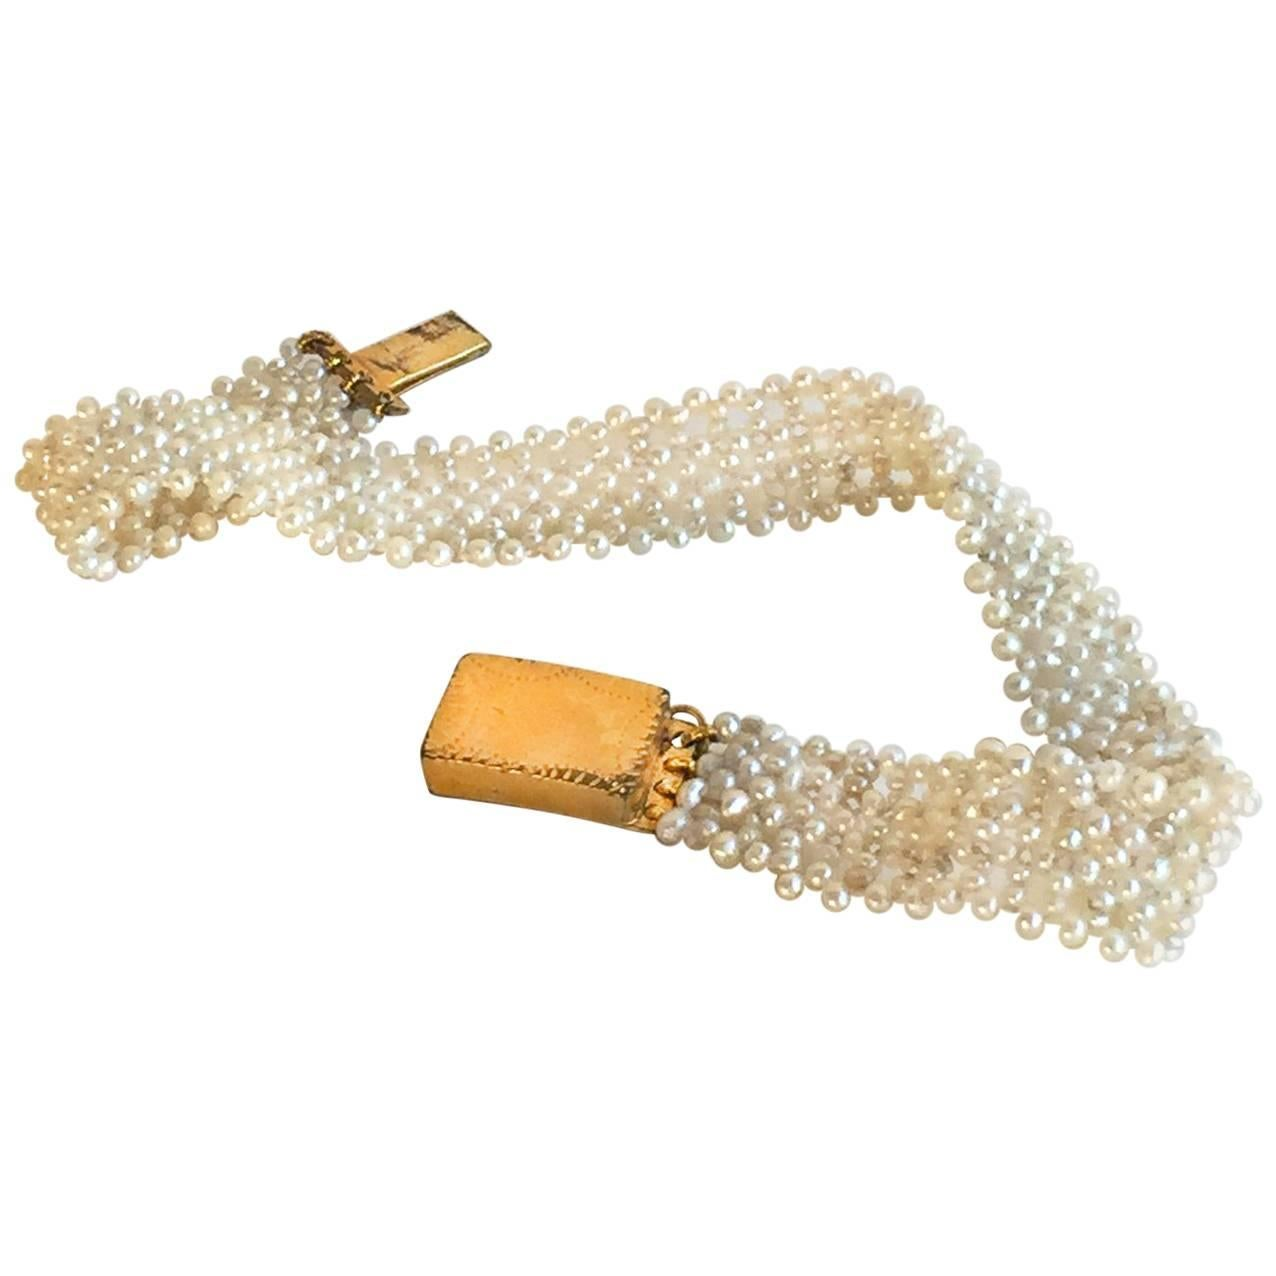 Marina J Woven Seed Pearl Bracelet with Vintage Gold clasp